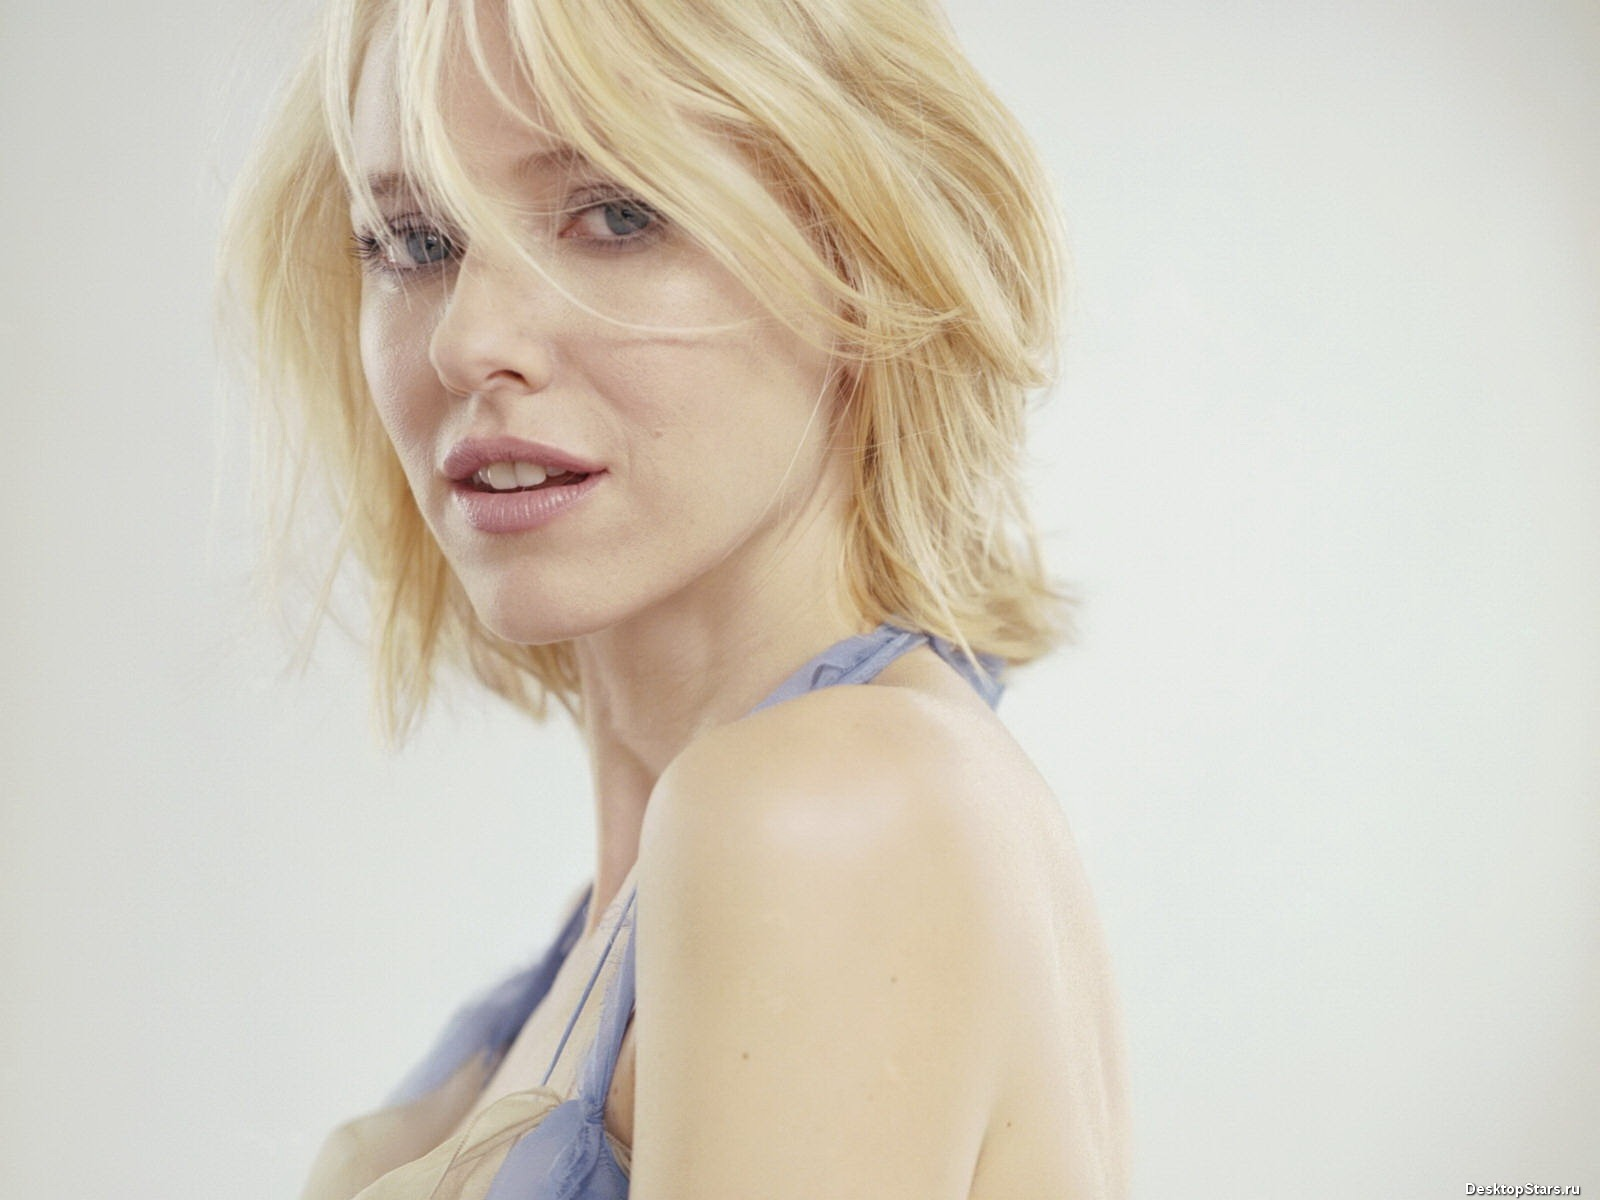 Naomi Watts #036 - 1600x1200 Wallpapers Pictures Photos Images